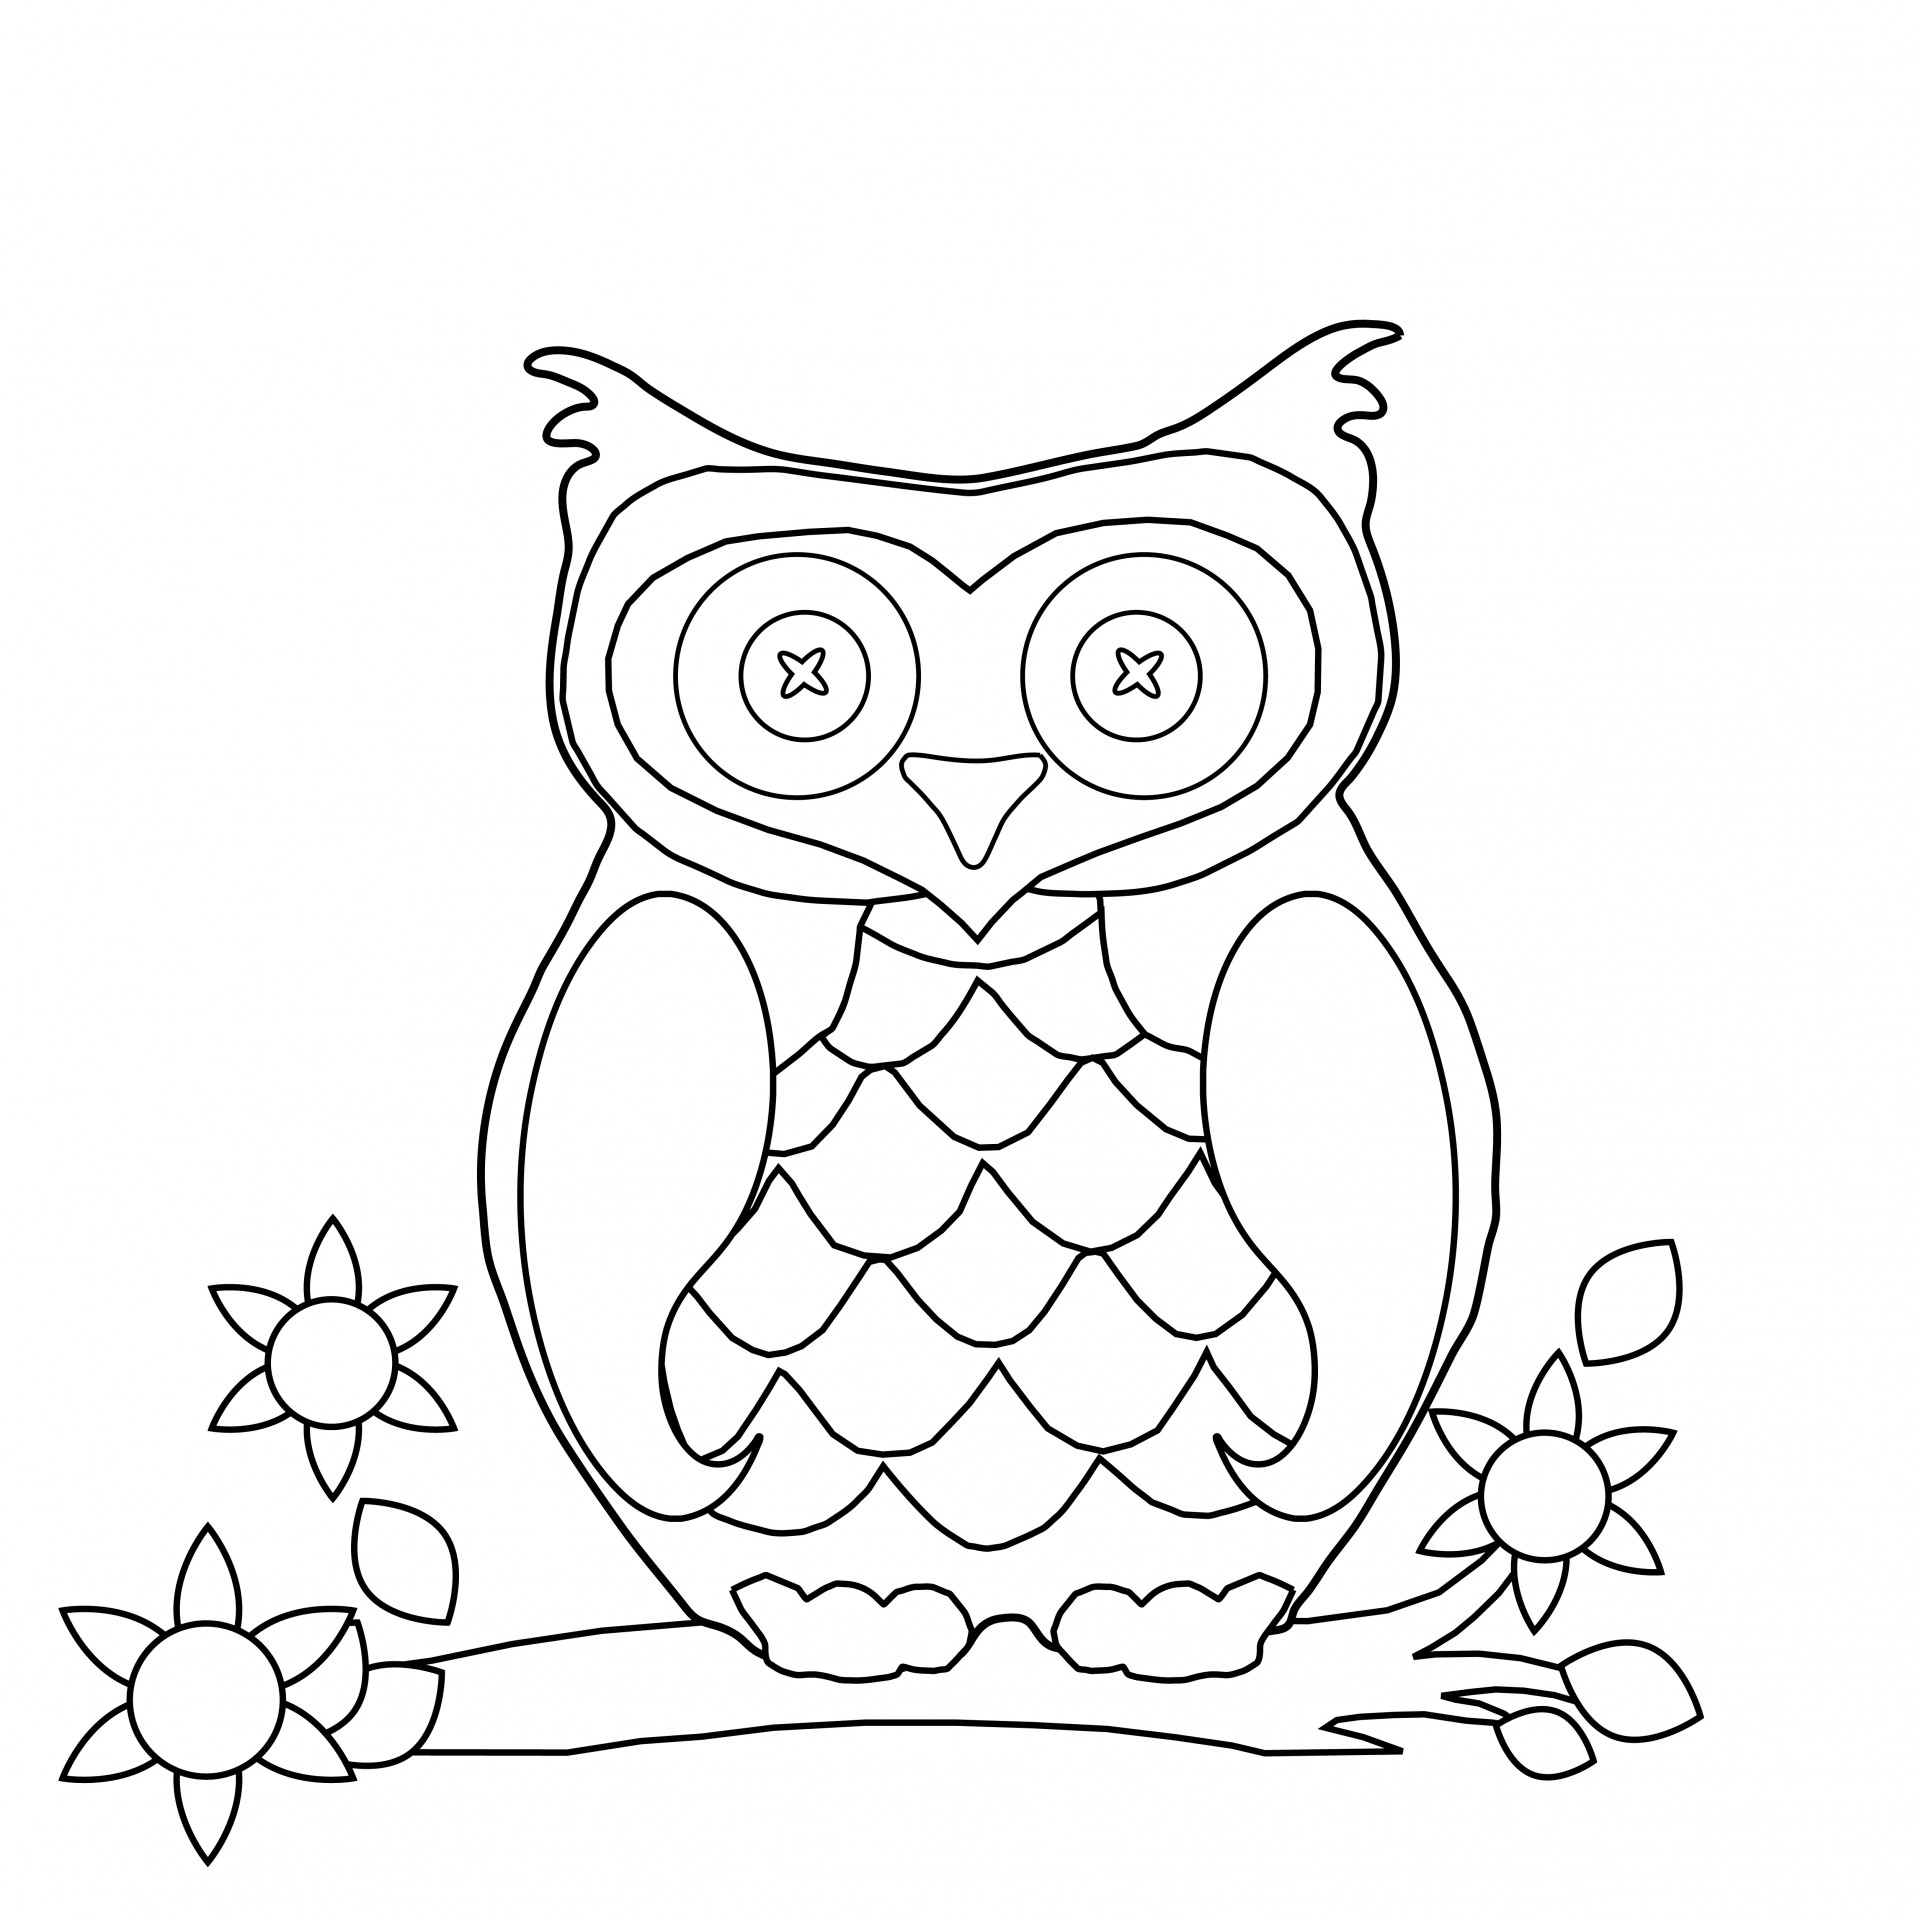 wwwfree coloring pagescom free full size coloring pages at getcoloringscom free wwwfree pagescom coloring